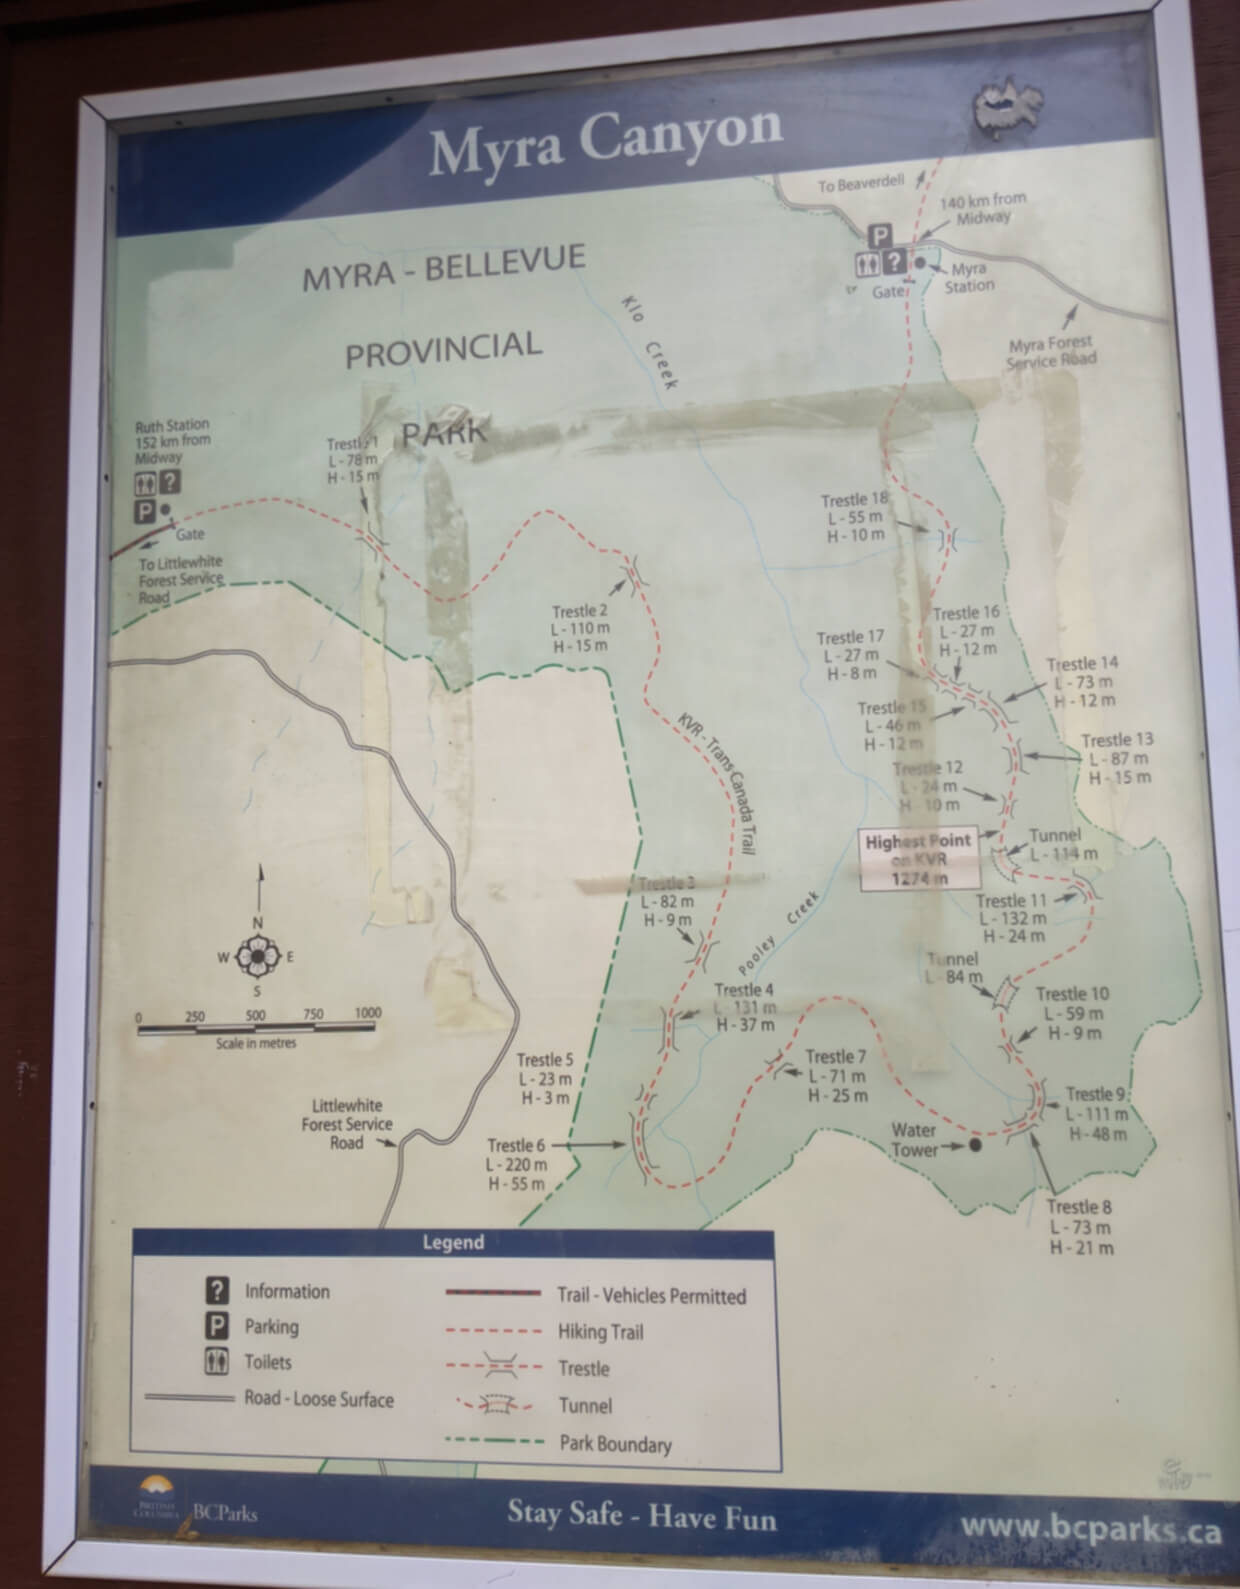 Map of Myra Canyon with all 18 trestle bridges marked on hiking trail